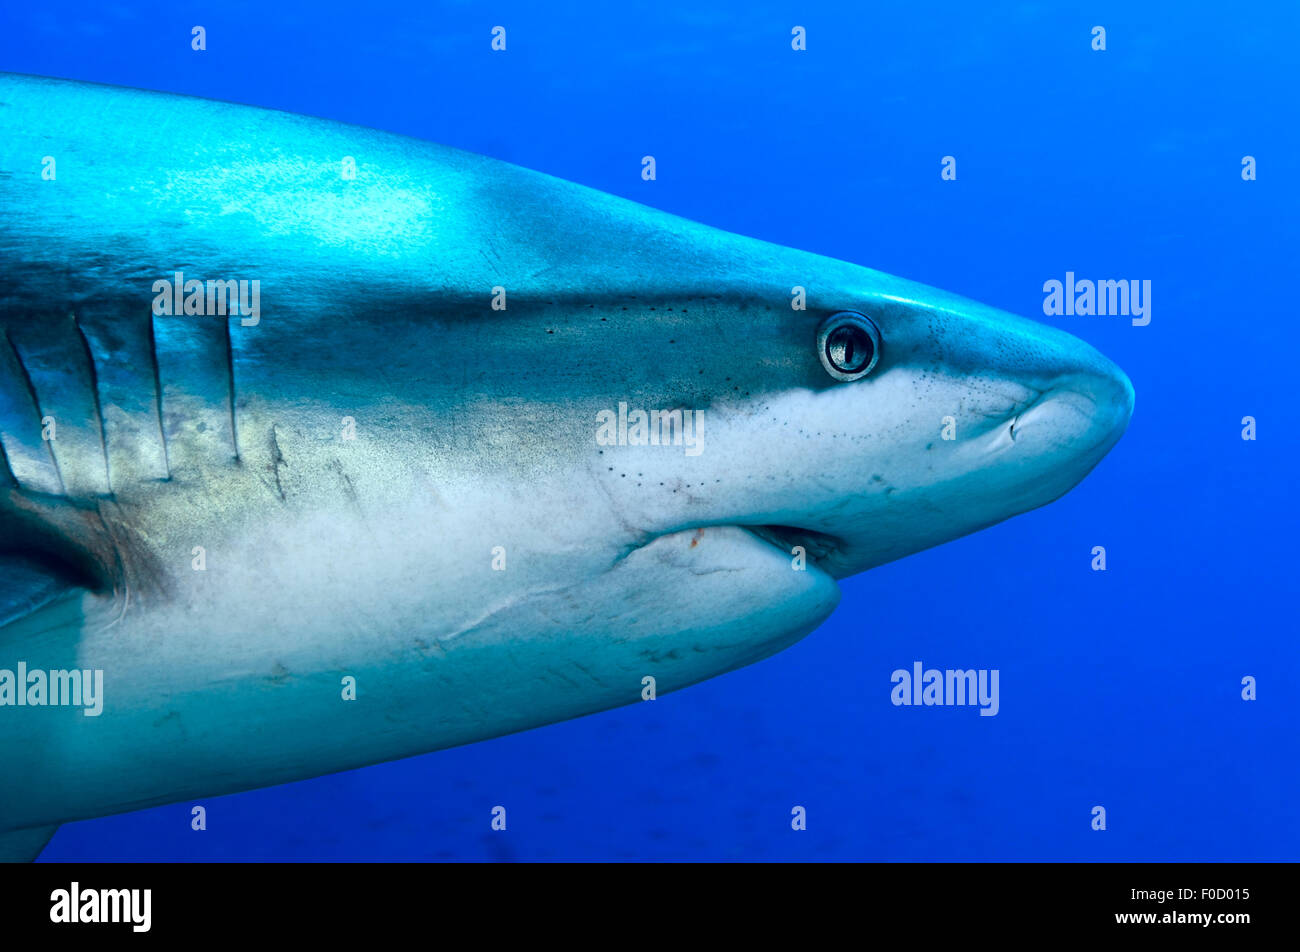 CLOSE-UP FACE OF OLD SILVERTIP SHARK - Stock Image